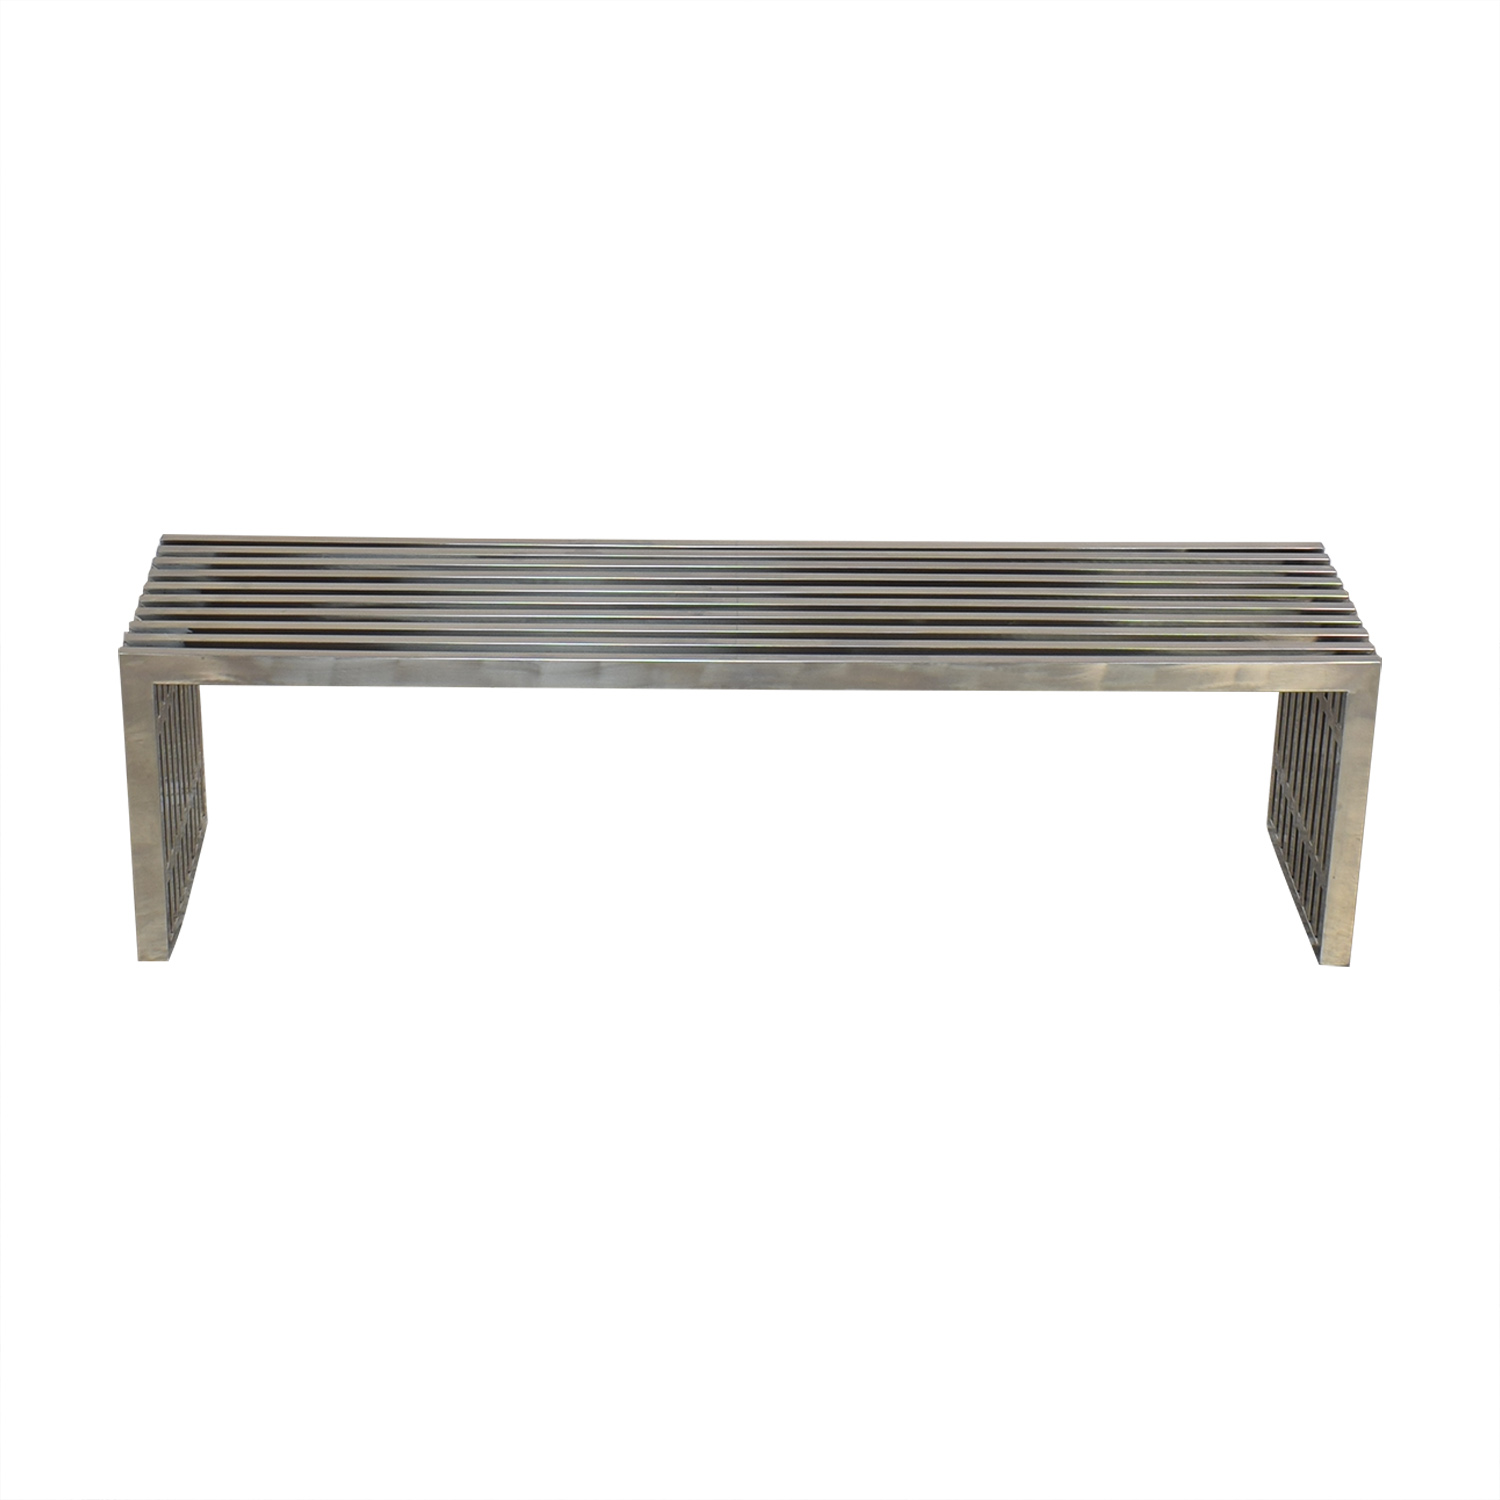 LexMod LexMod Gridiron Large Bench price